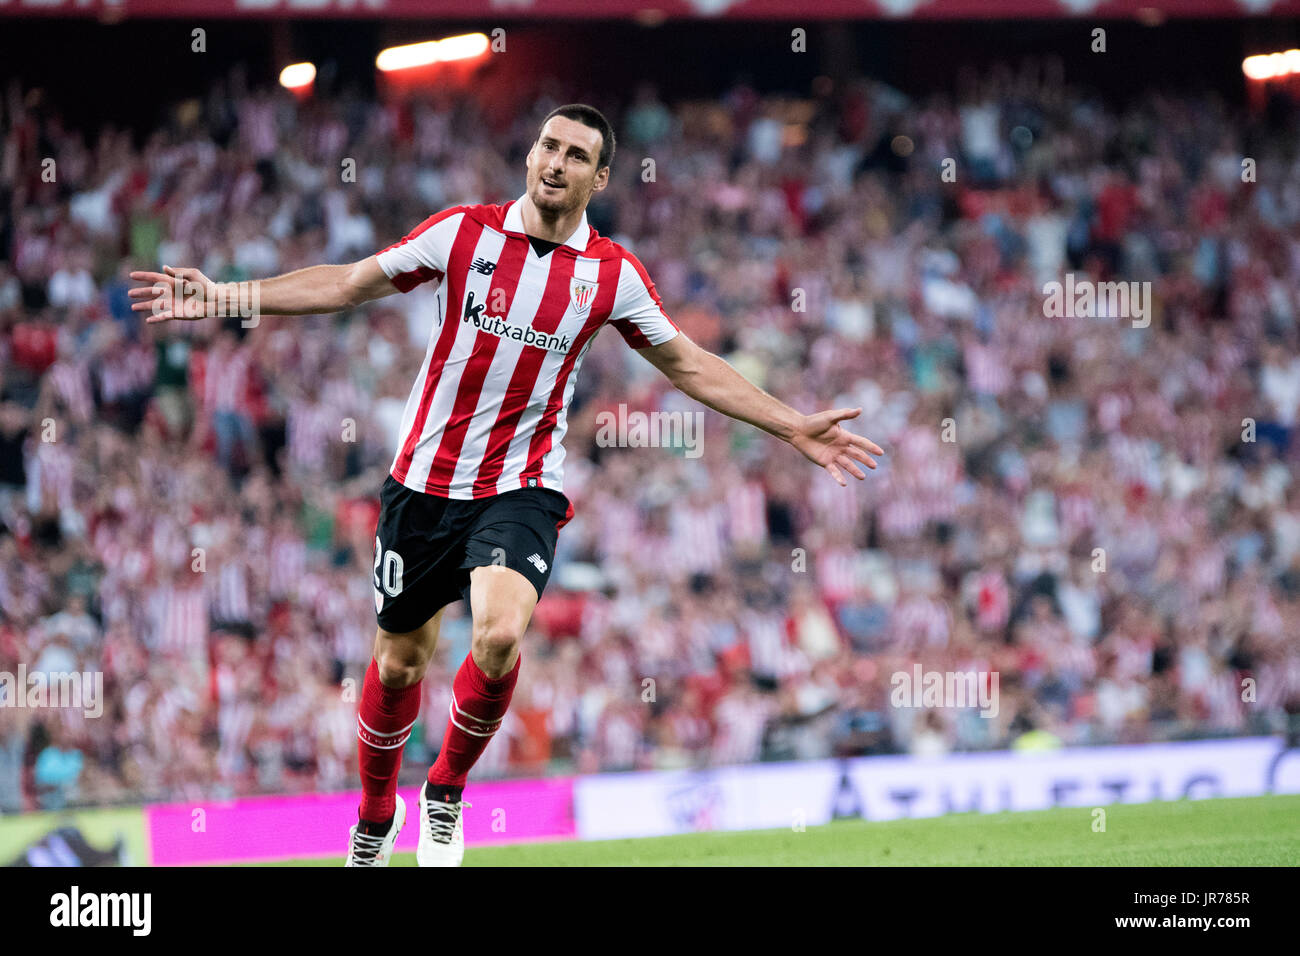 Bilbao, Spain. 3th August, 2017. Aritz Aduriz (Forward, Athletic Club) celebrates his goal, the third of his team, during the football match of 2nd leg of third qualifying round of 2017/2018 UEFA Europa League between Athletic Club and FC Dinamo Bucuresti at San Mames Stadium on August 3, 2017 in Bilbao, Spain. ©David Gato/Alamy Live News - Stock Image